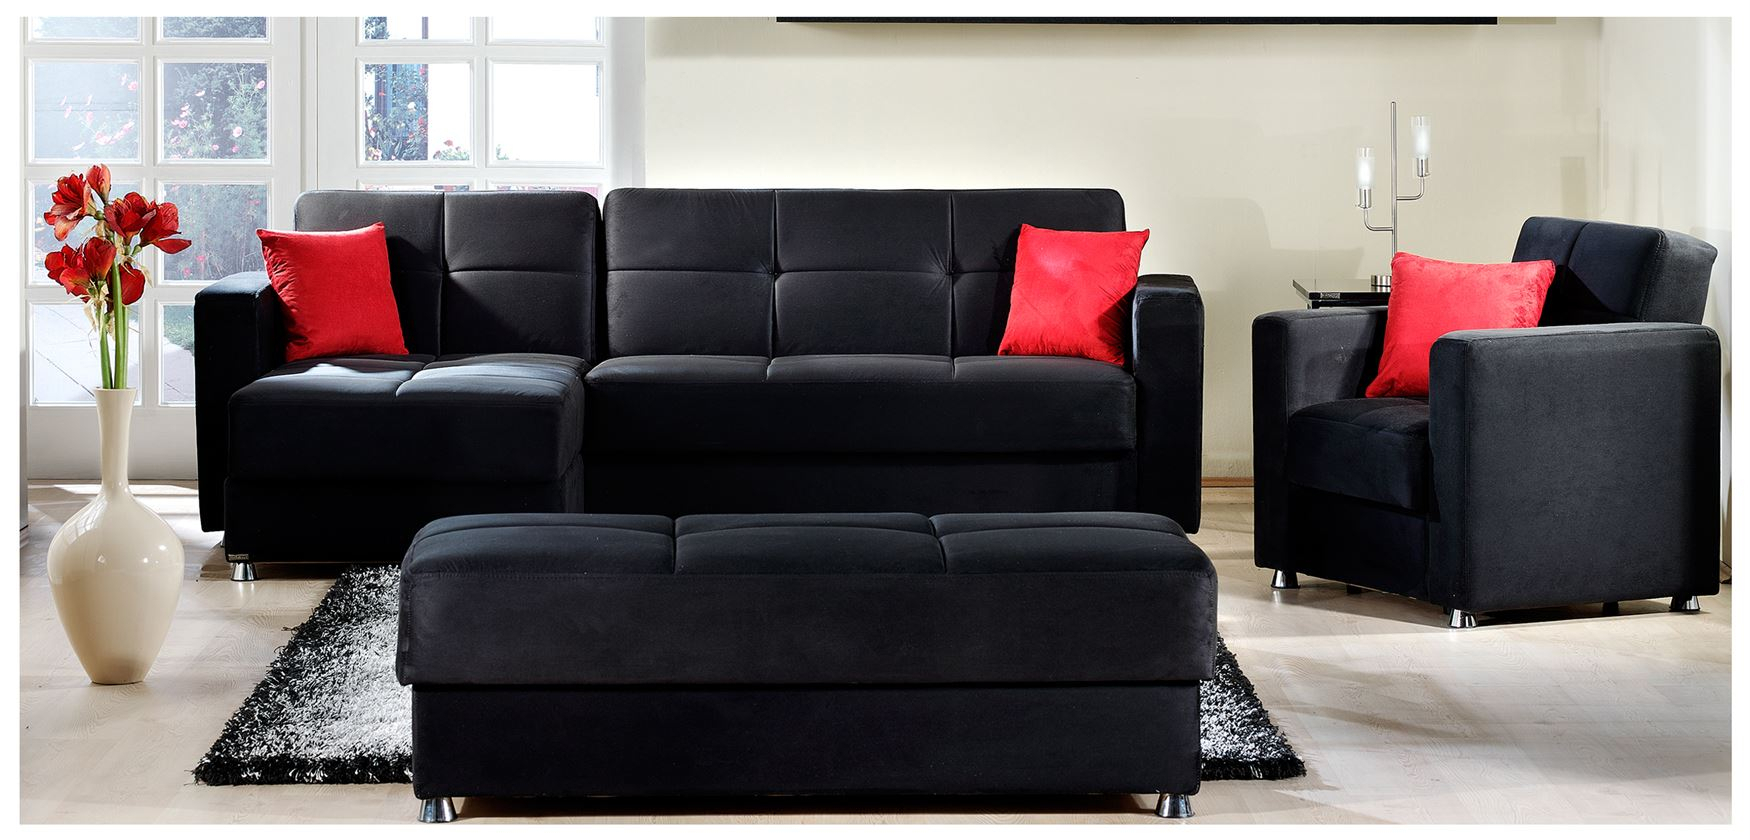 Elegant Rainbow Modern Black Sectional/Sofa Bed In Leather Within Elegant Sectional Sofas (View 2 of 15)